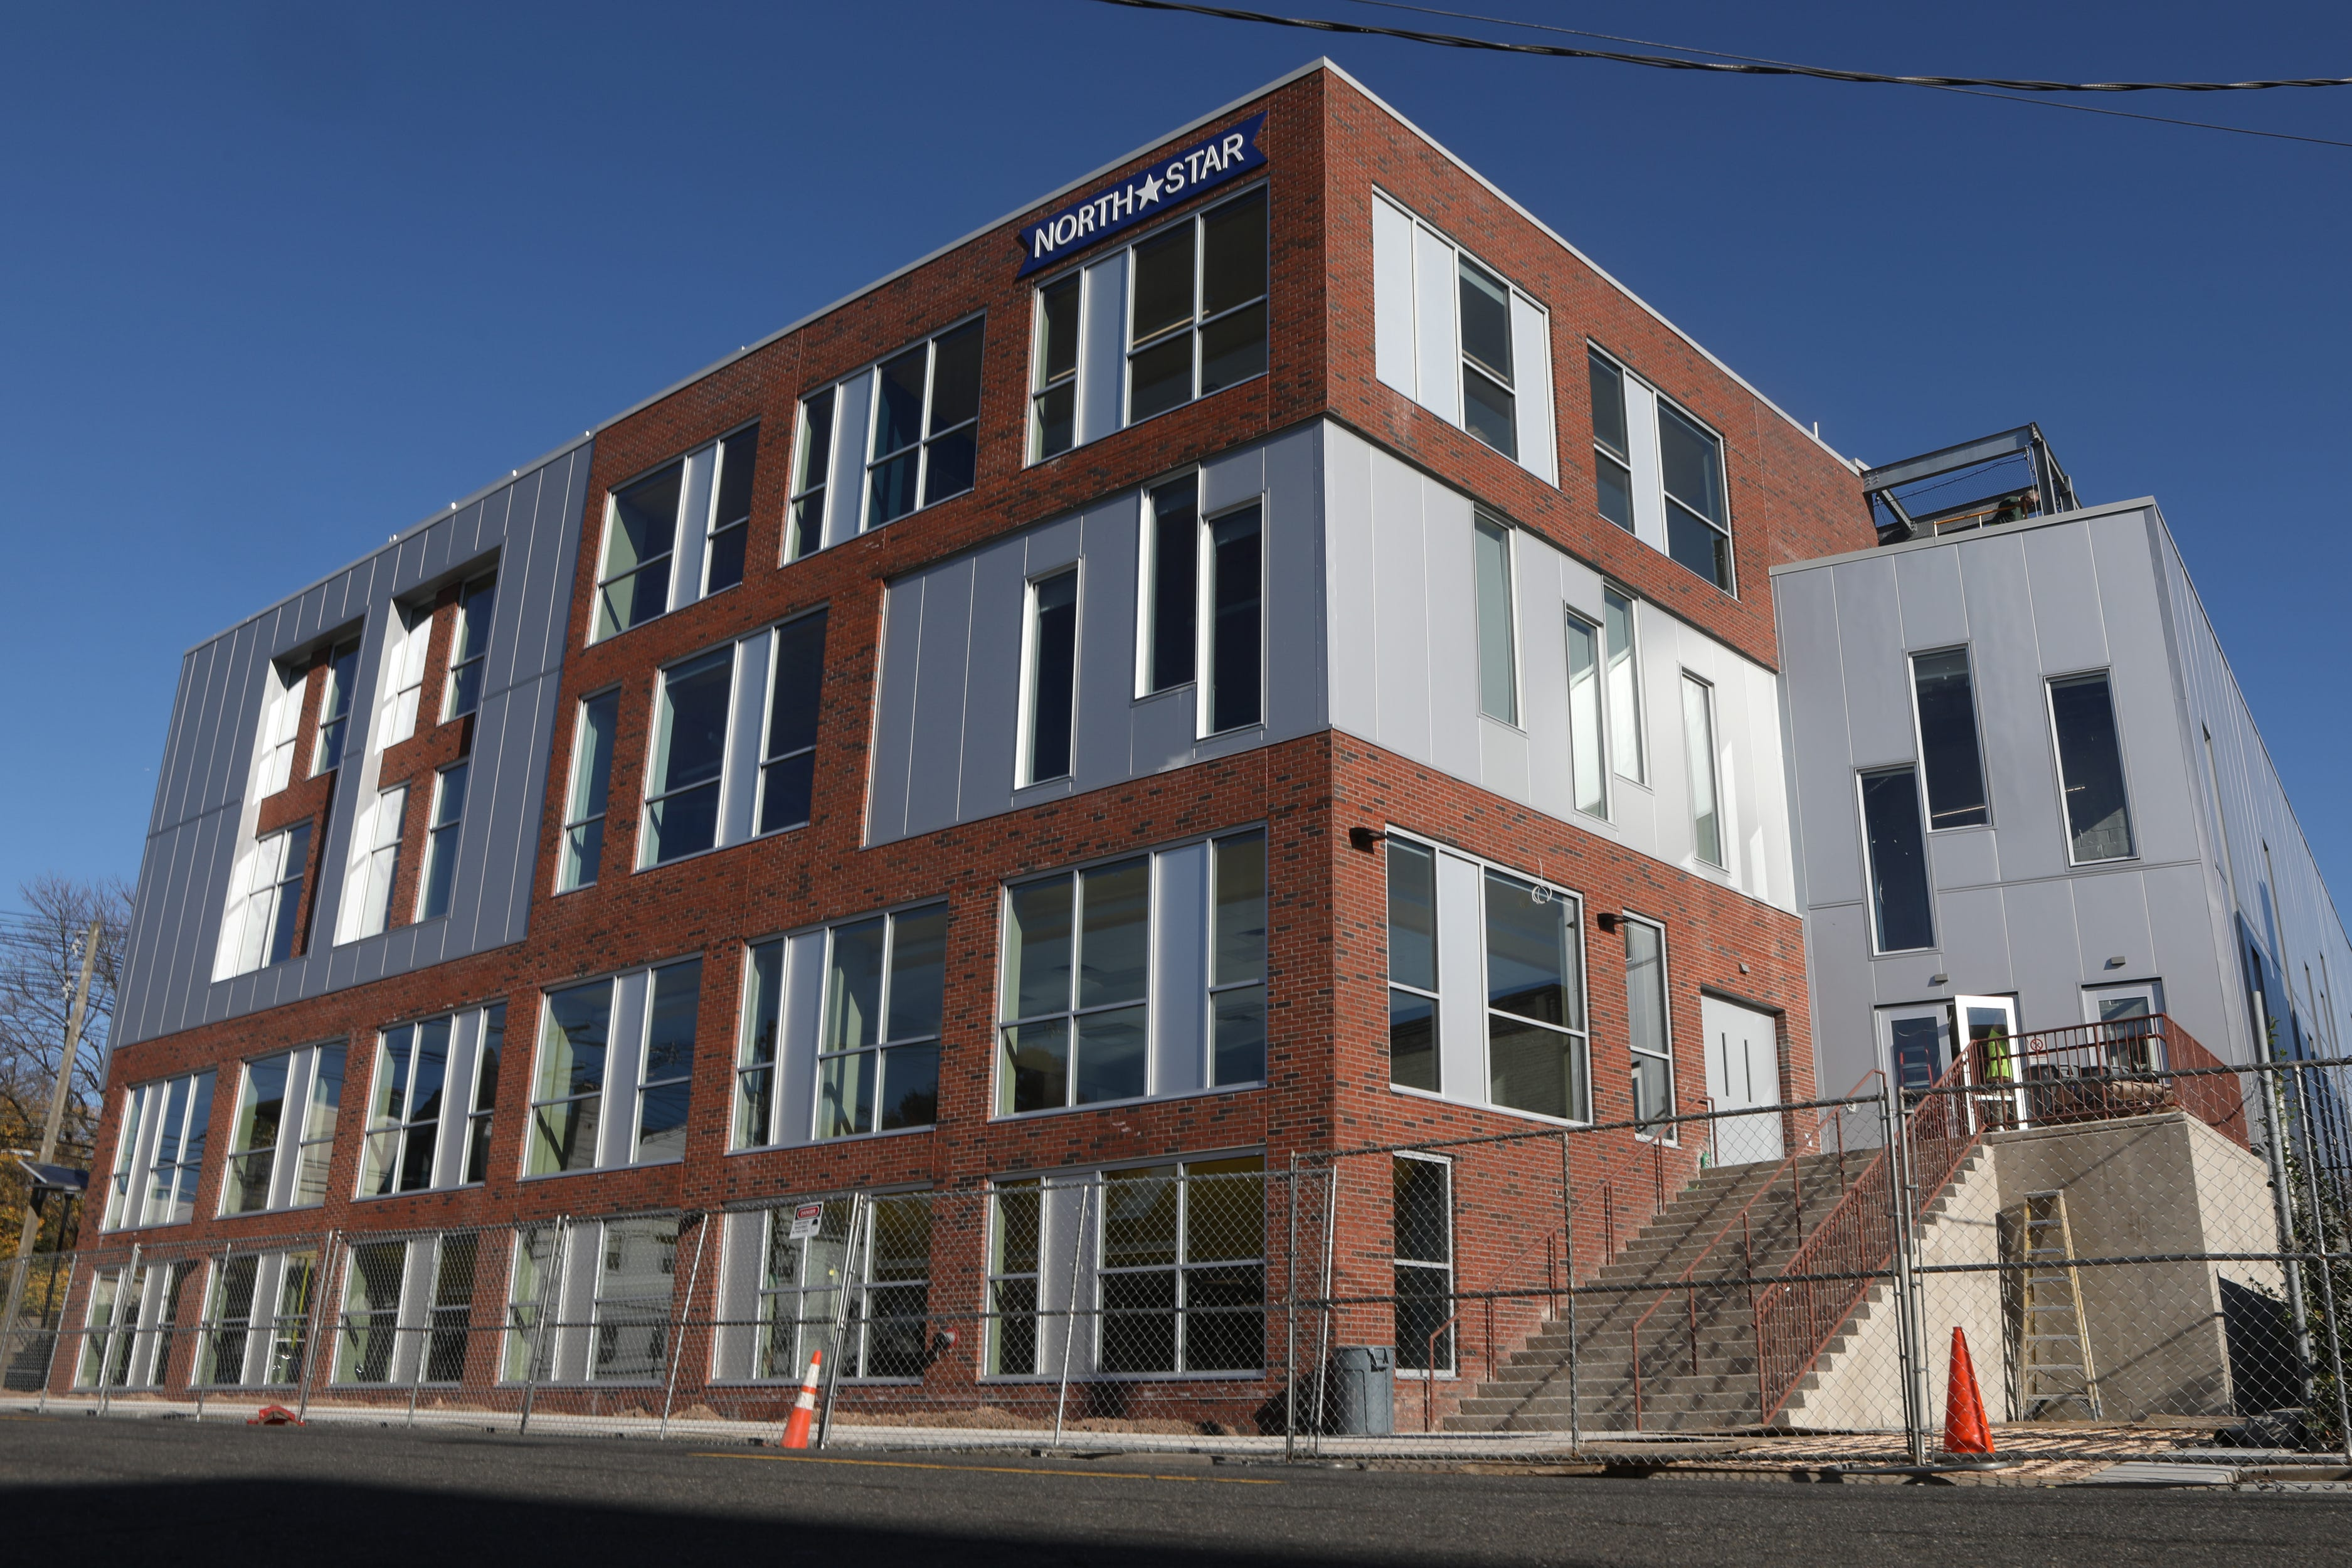 Uncommon Schools' newest North Star Academy facility, located at 571-585 18th Ave. in Newark, included the renovation of a building and the construction of a large addition. It opened in November 2018.